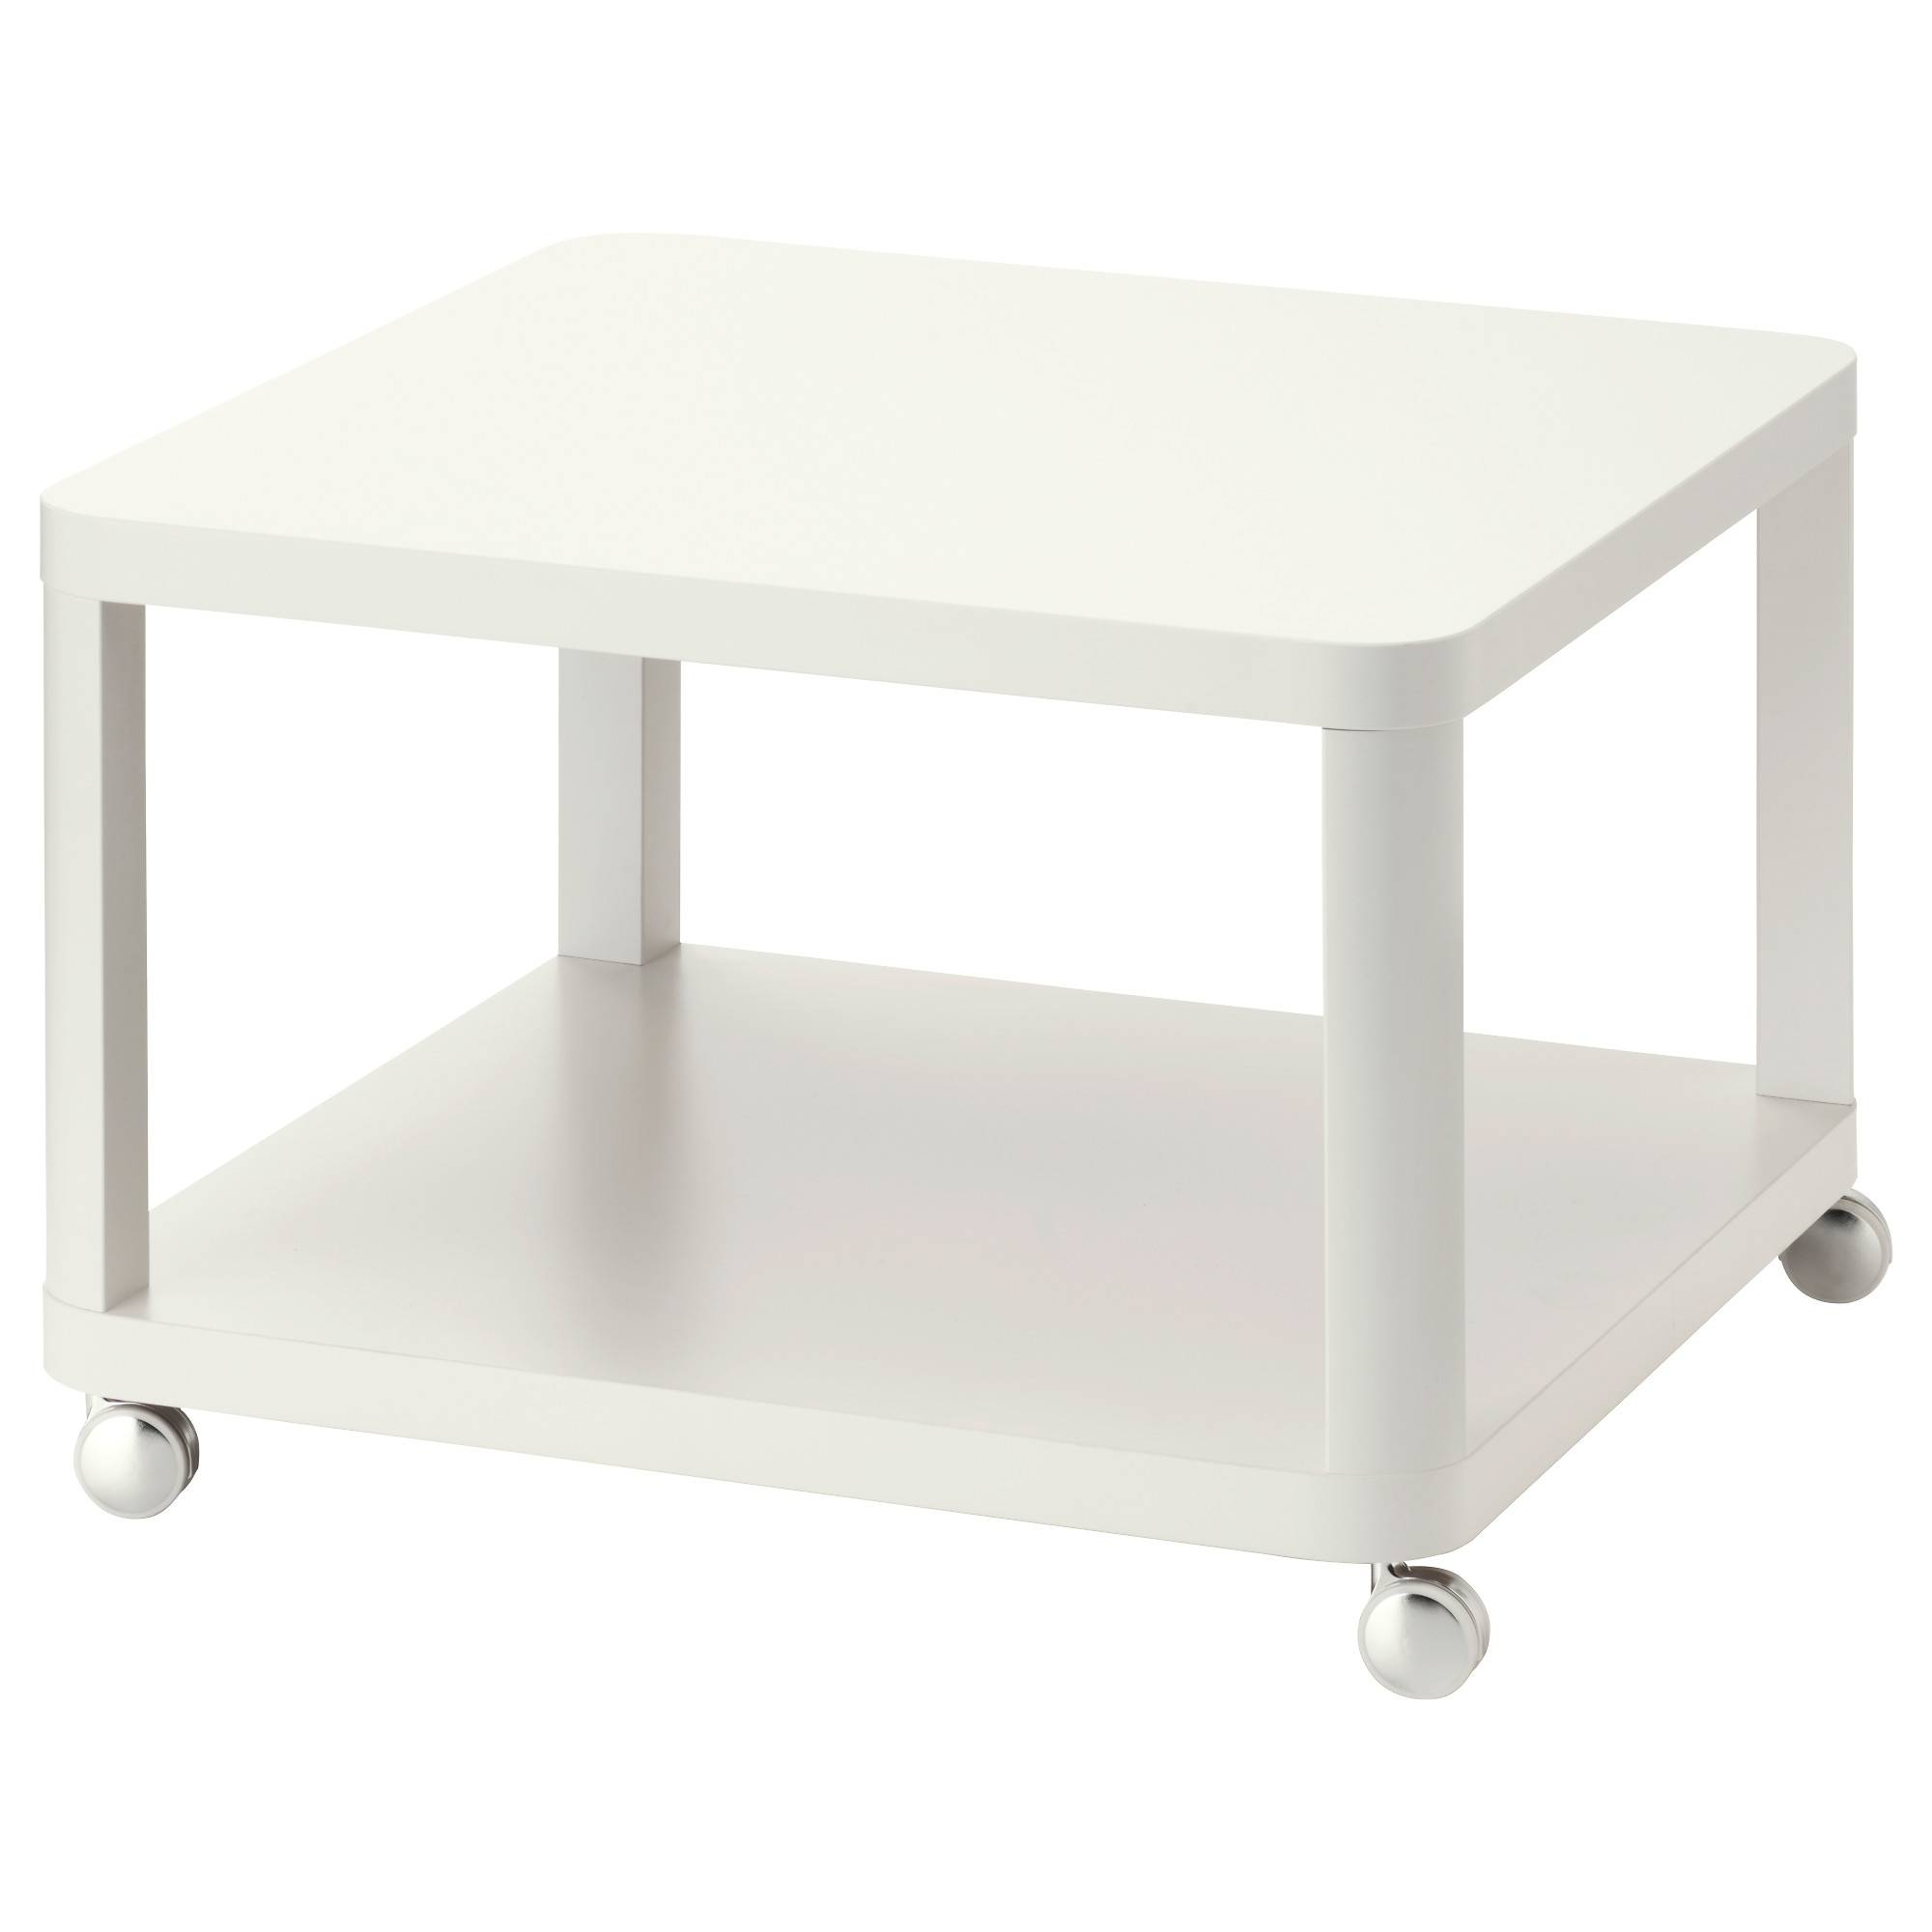 Side Tables - Glass & Wooden Side Tables - Ikea regarding Elephant Coffee Tables With Glass Top (Image 29 of 30)